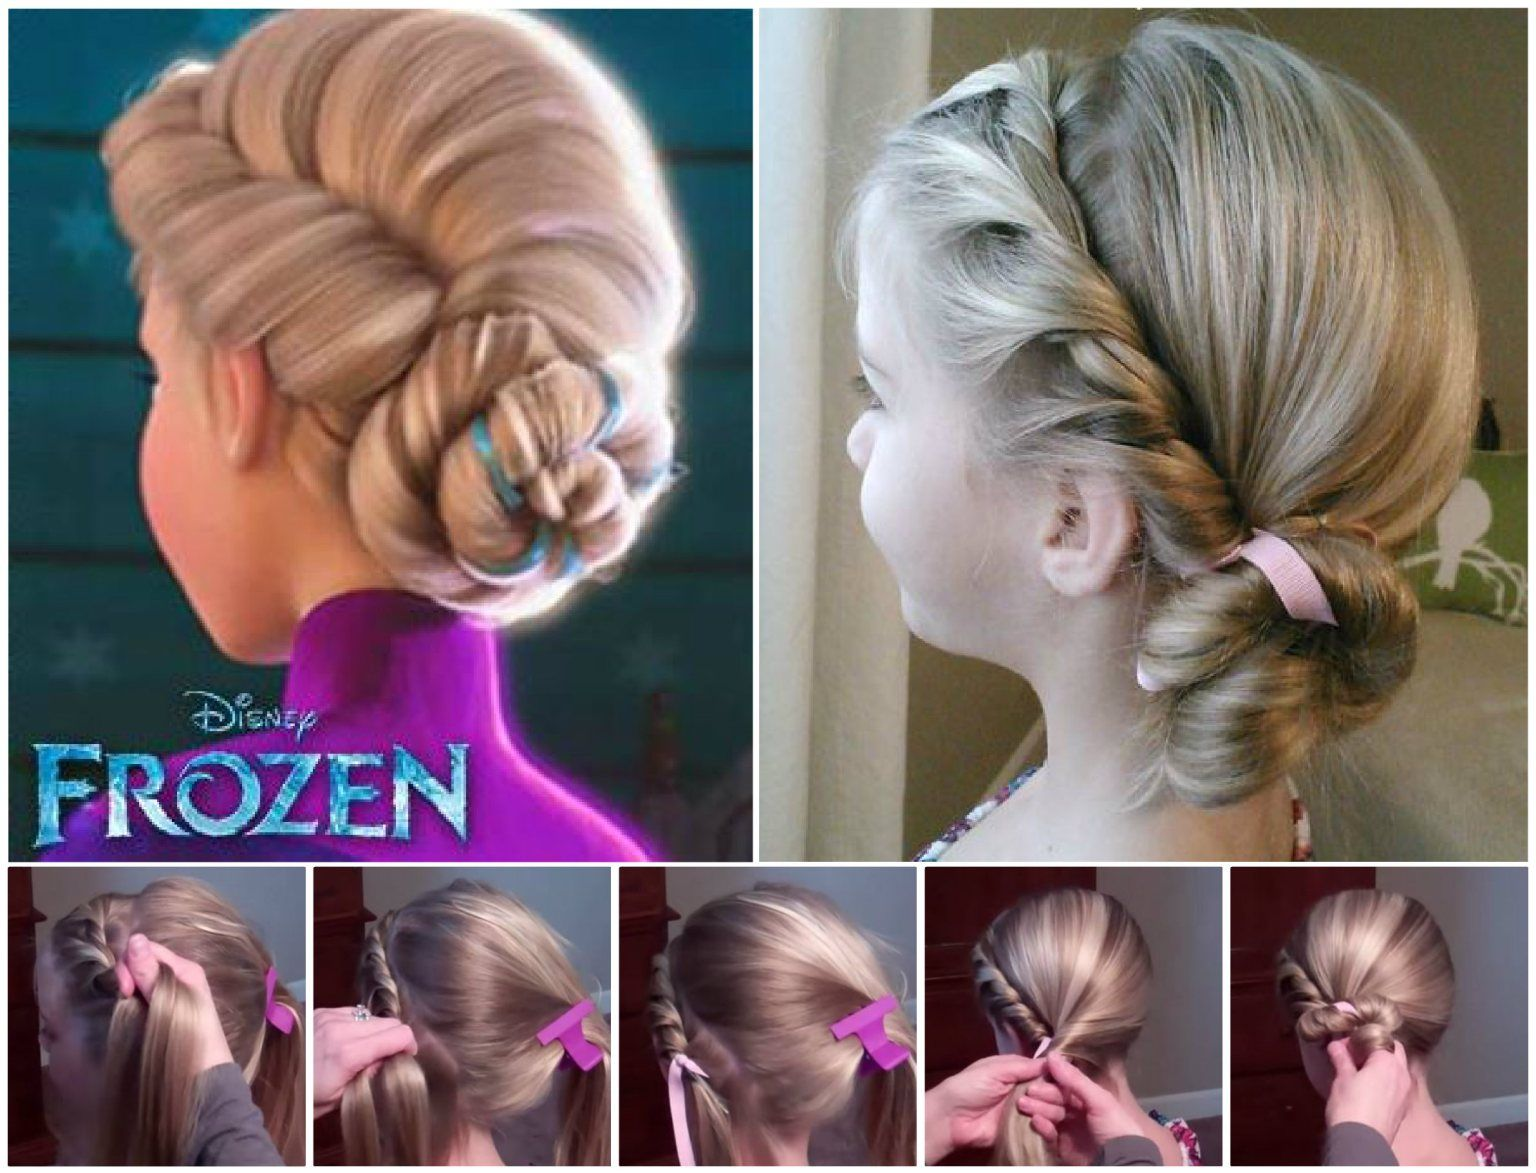 diy coronation hairstyle inspired by disney's frozen | diy